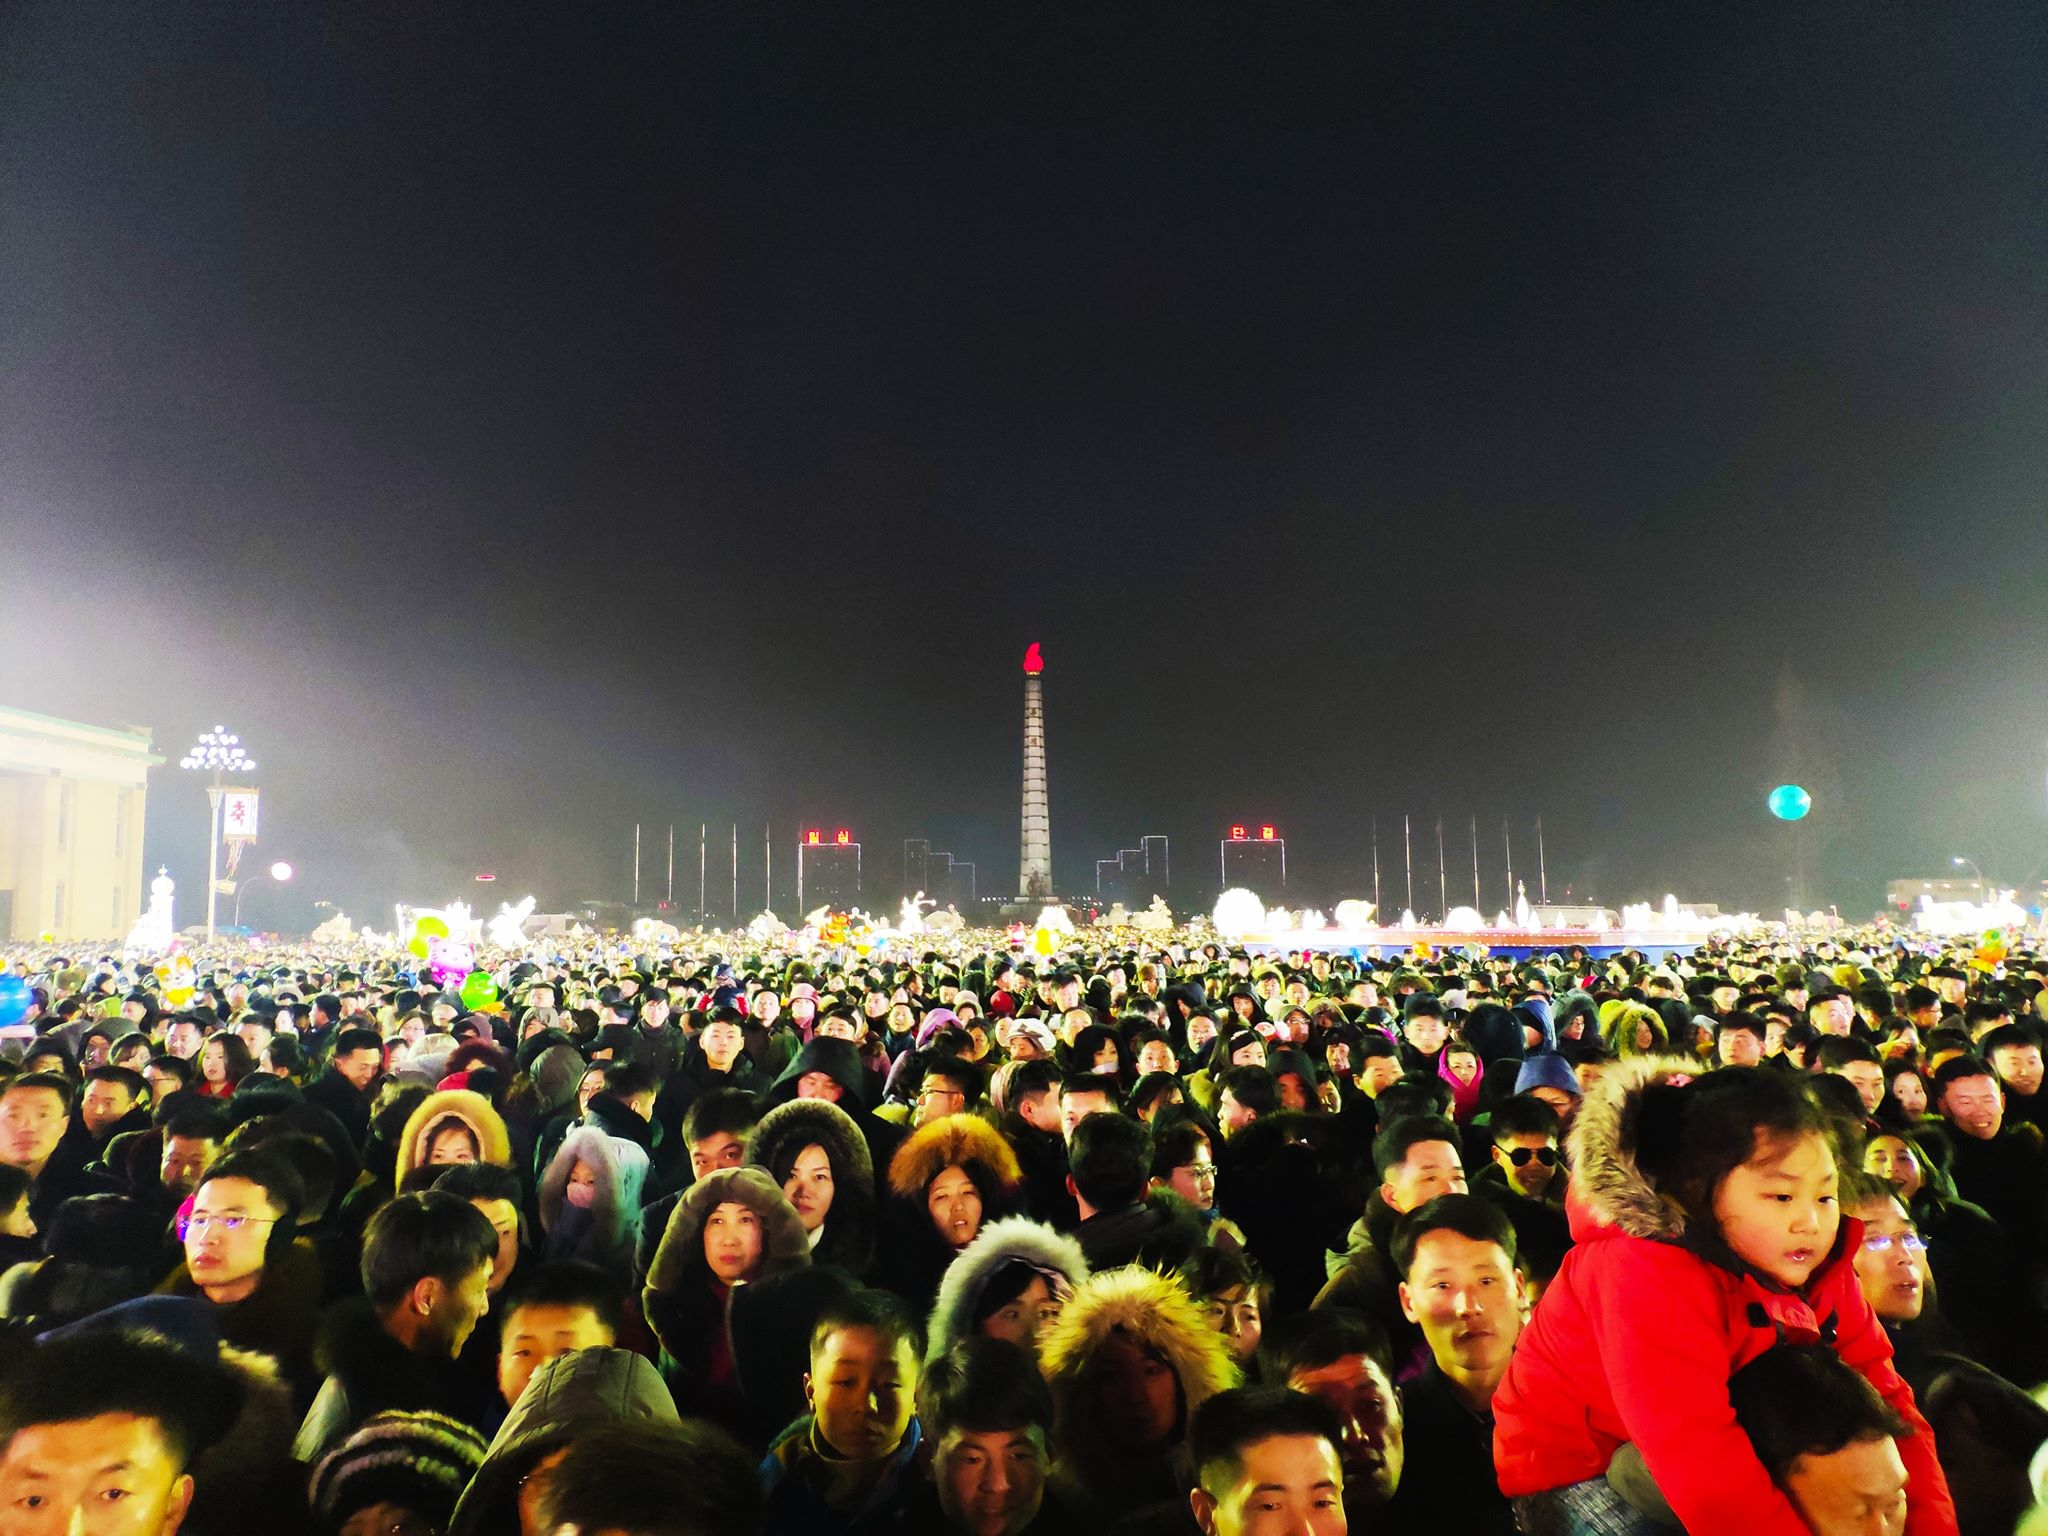 The crowds during New Years eve celebrations in Pyongyang